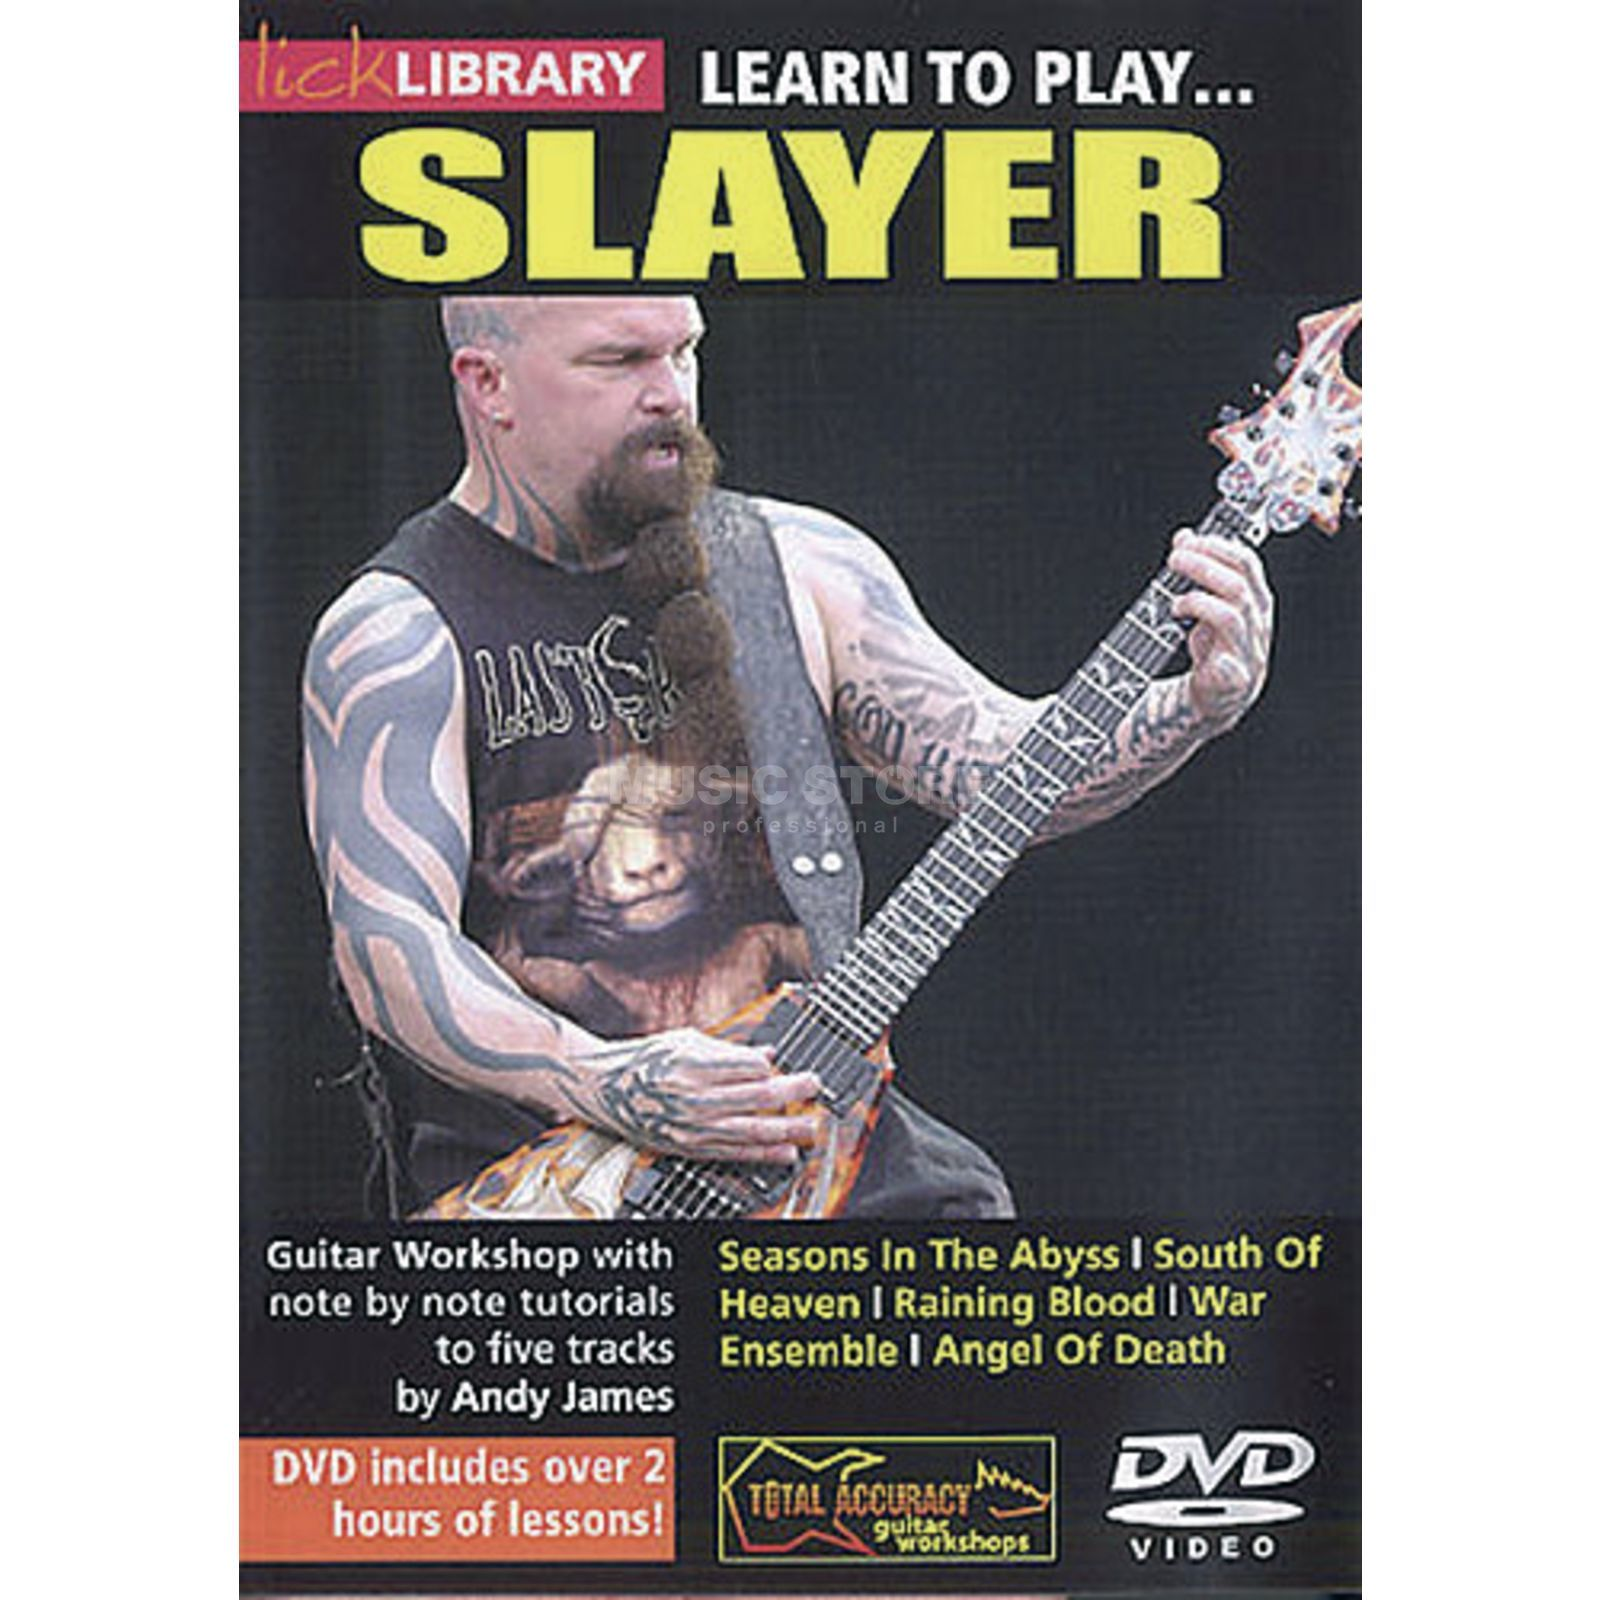 Roadrock International Lick Library: Learn To Play Slayer DVD Produktbillede